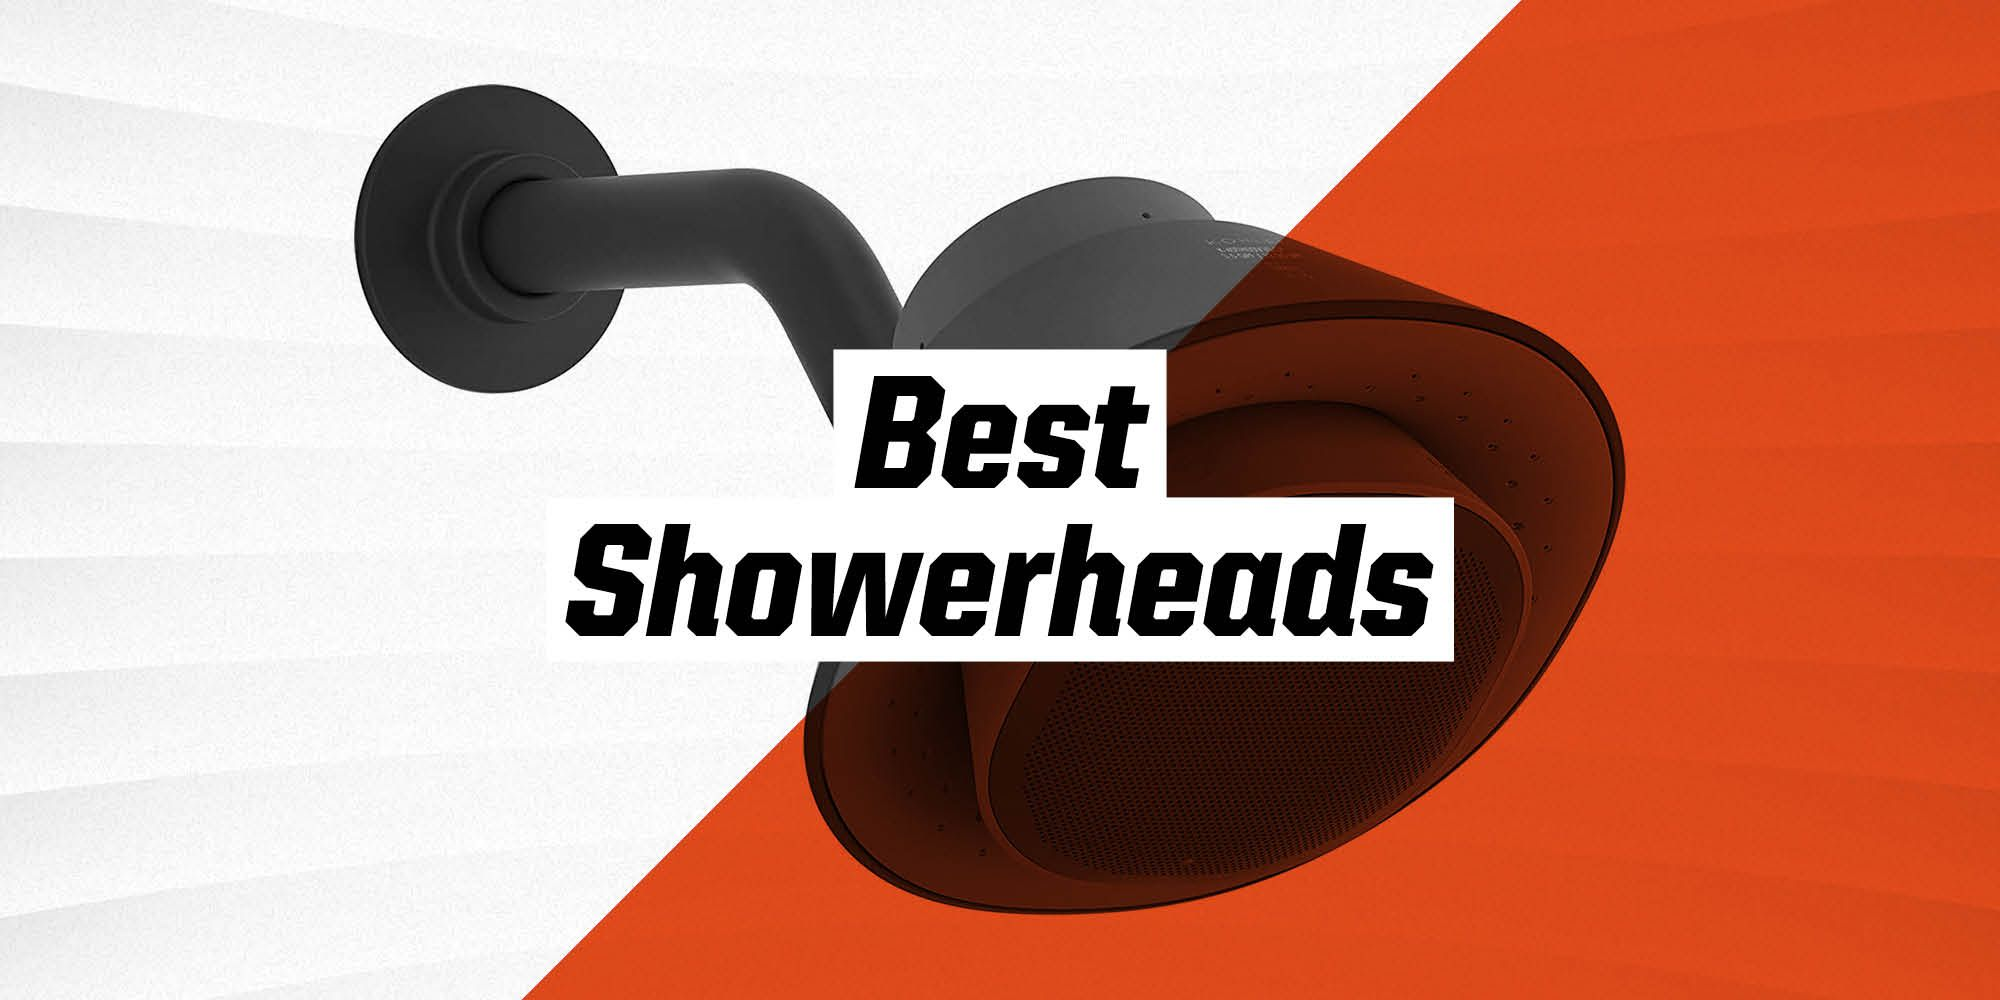 The 9 Best Showerheads to Revamp Your Bathroom